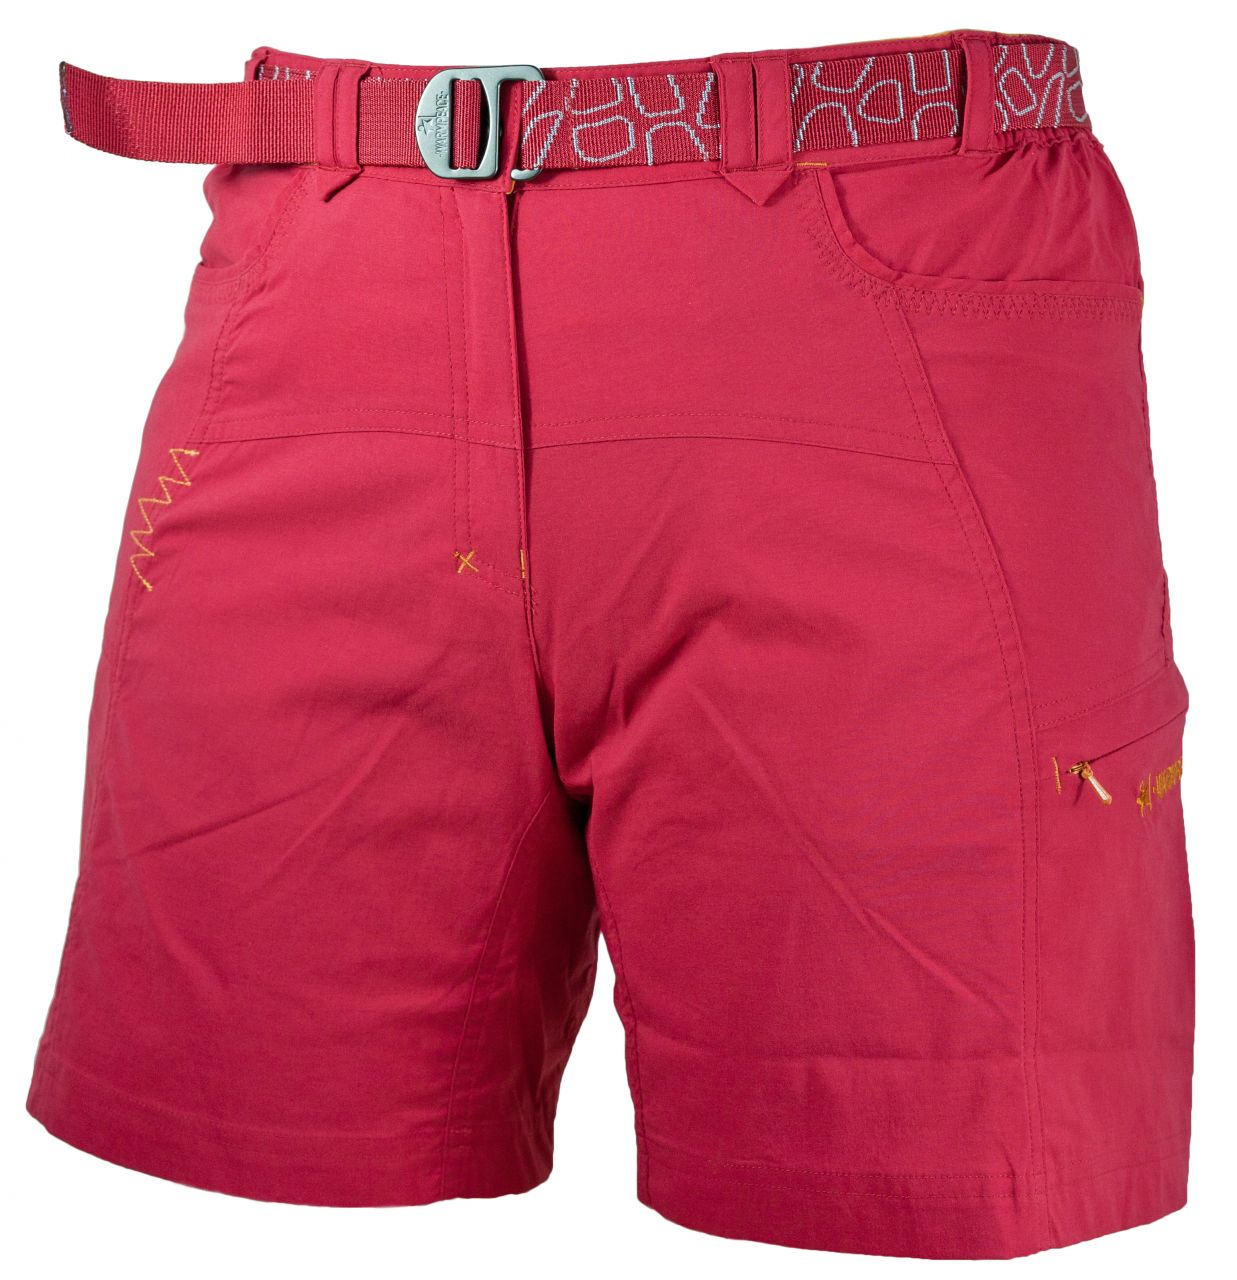 Warmpeace Muriel Lady Shorts rose red XS